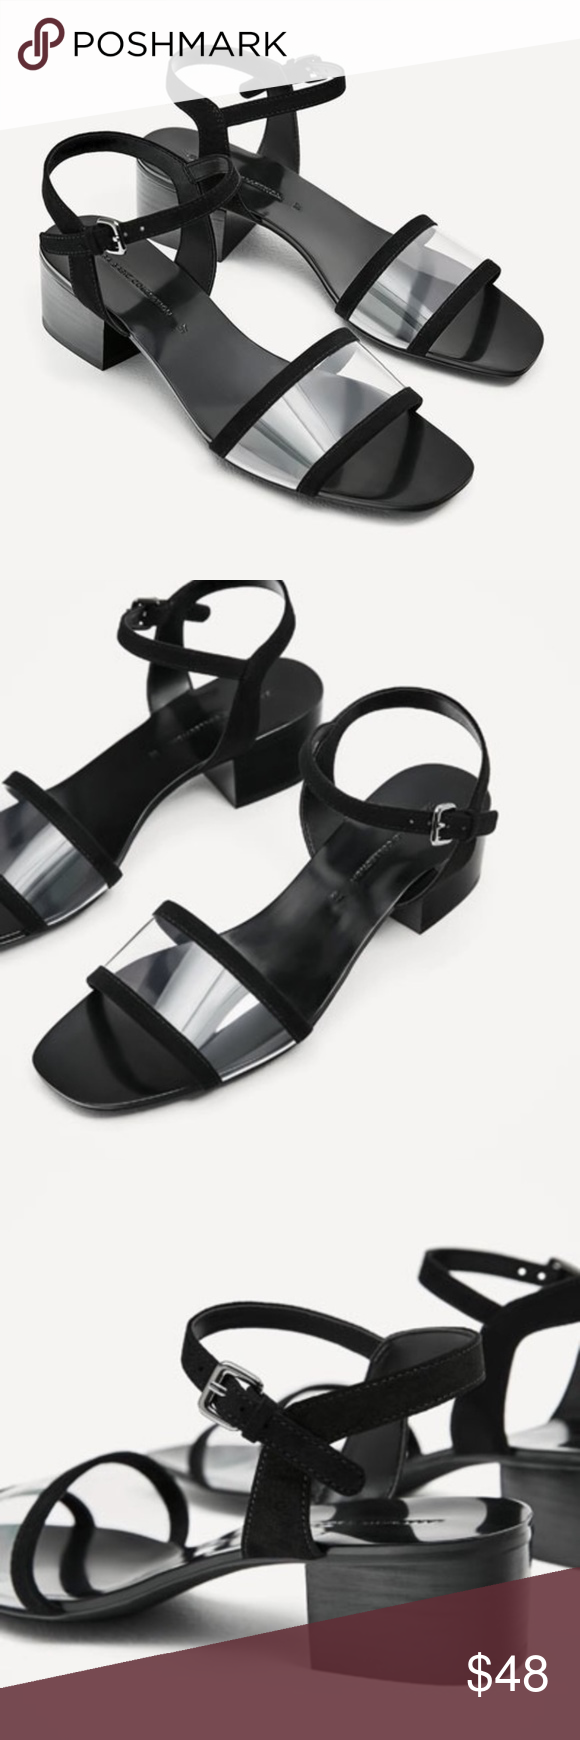 155afb83243 Zara Shoes | Zara Black Vinyl Mid Block Heel Ankle Strap Sandal ...